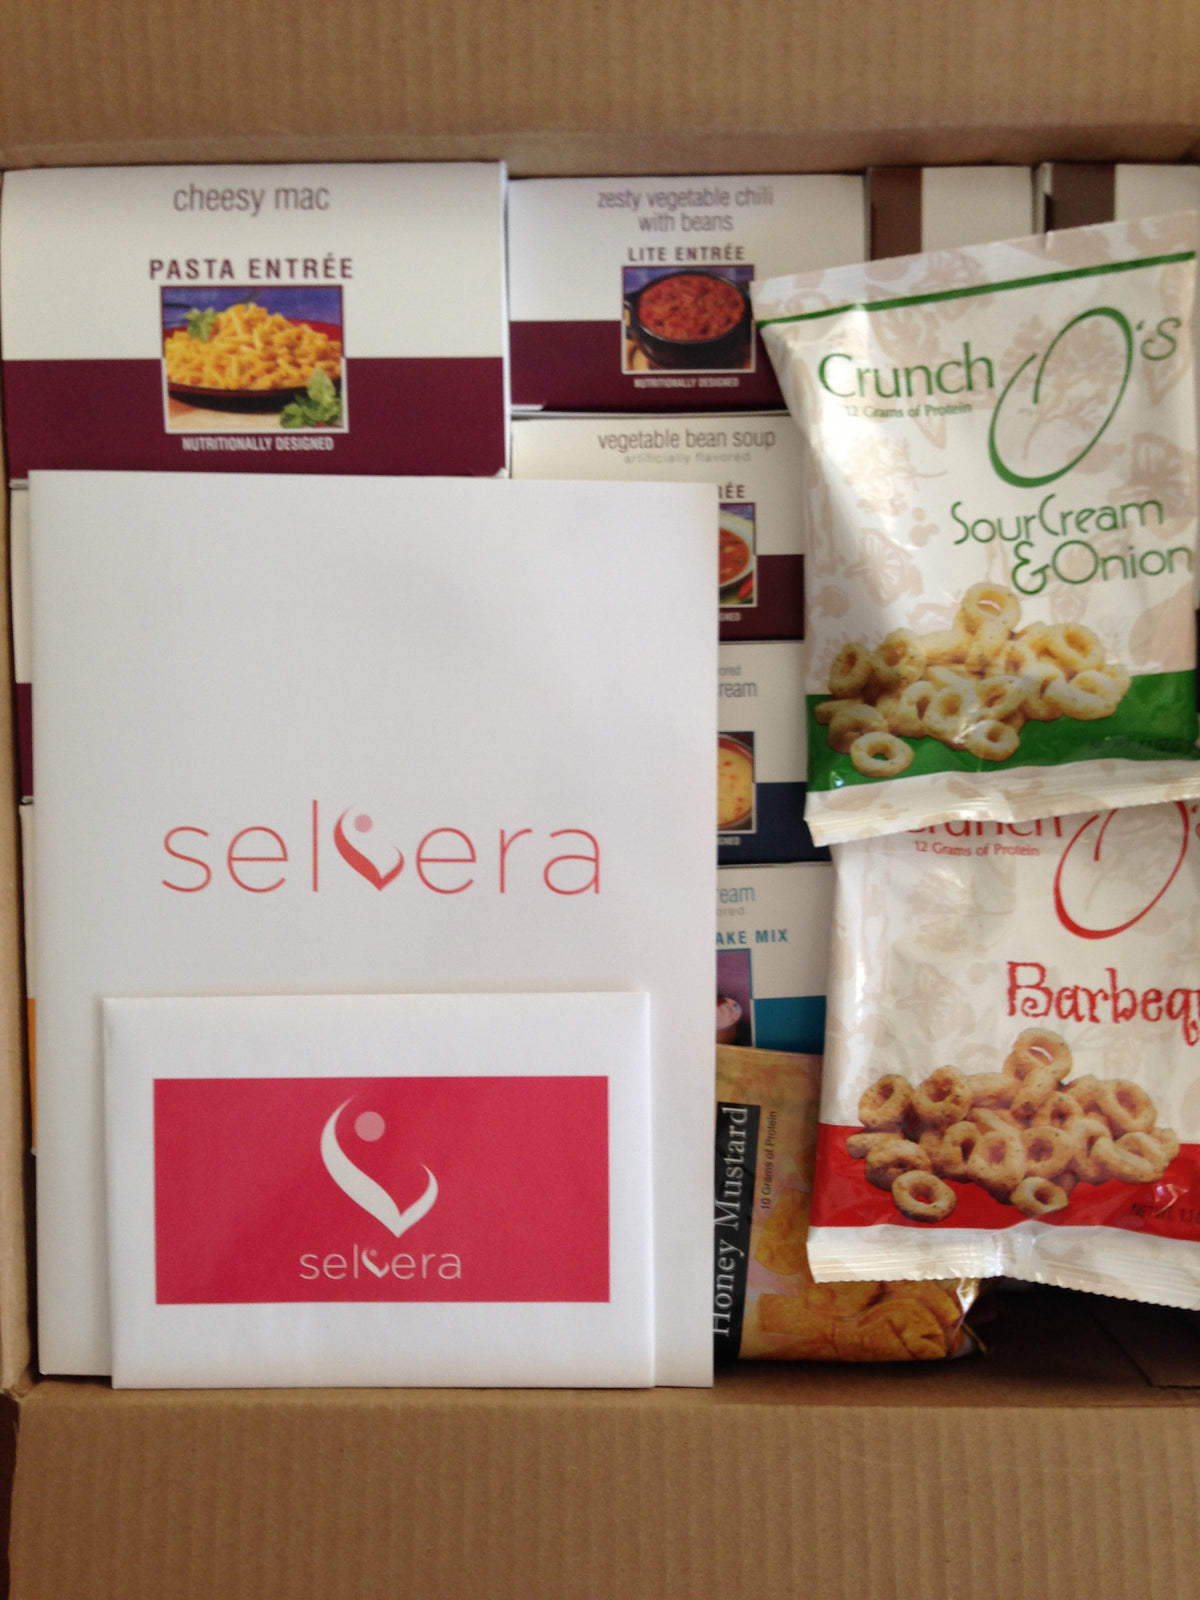 Selvera Weight Management Review - Entry 1